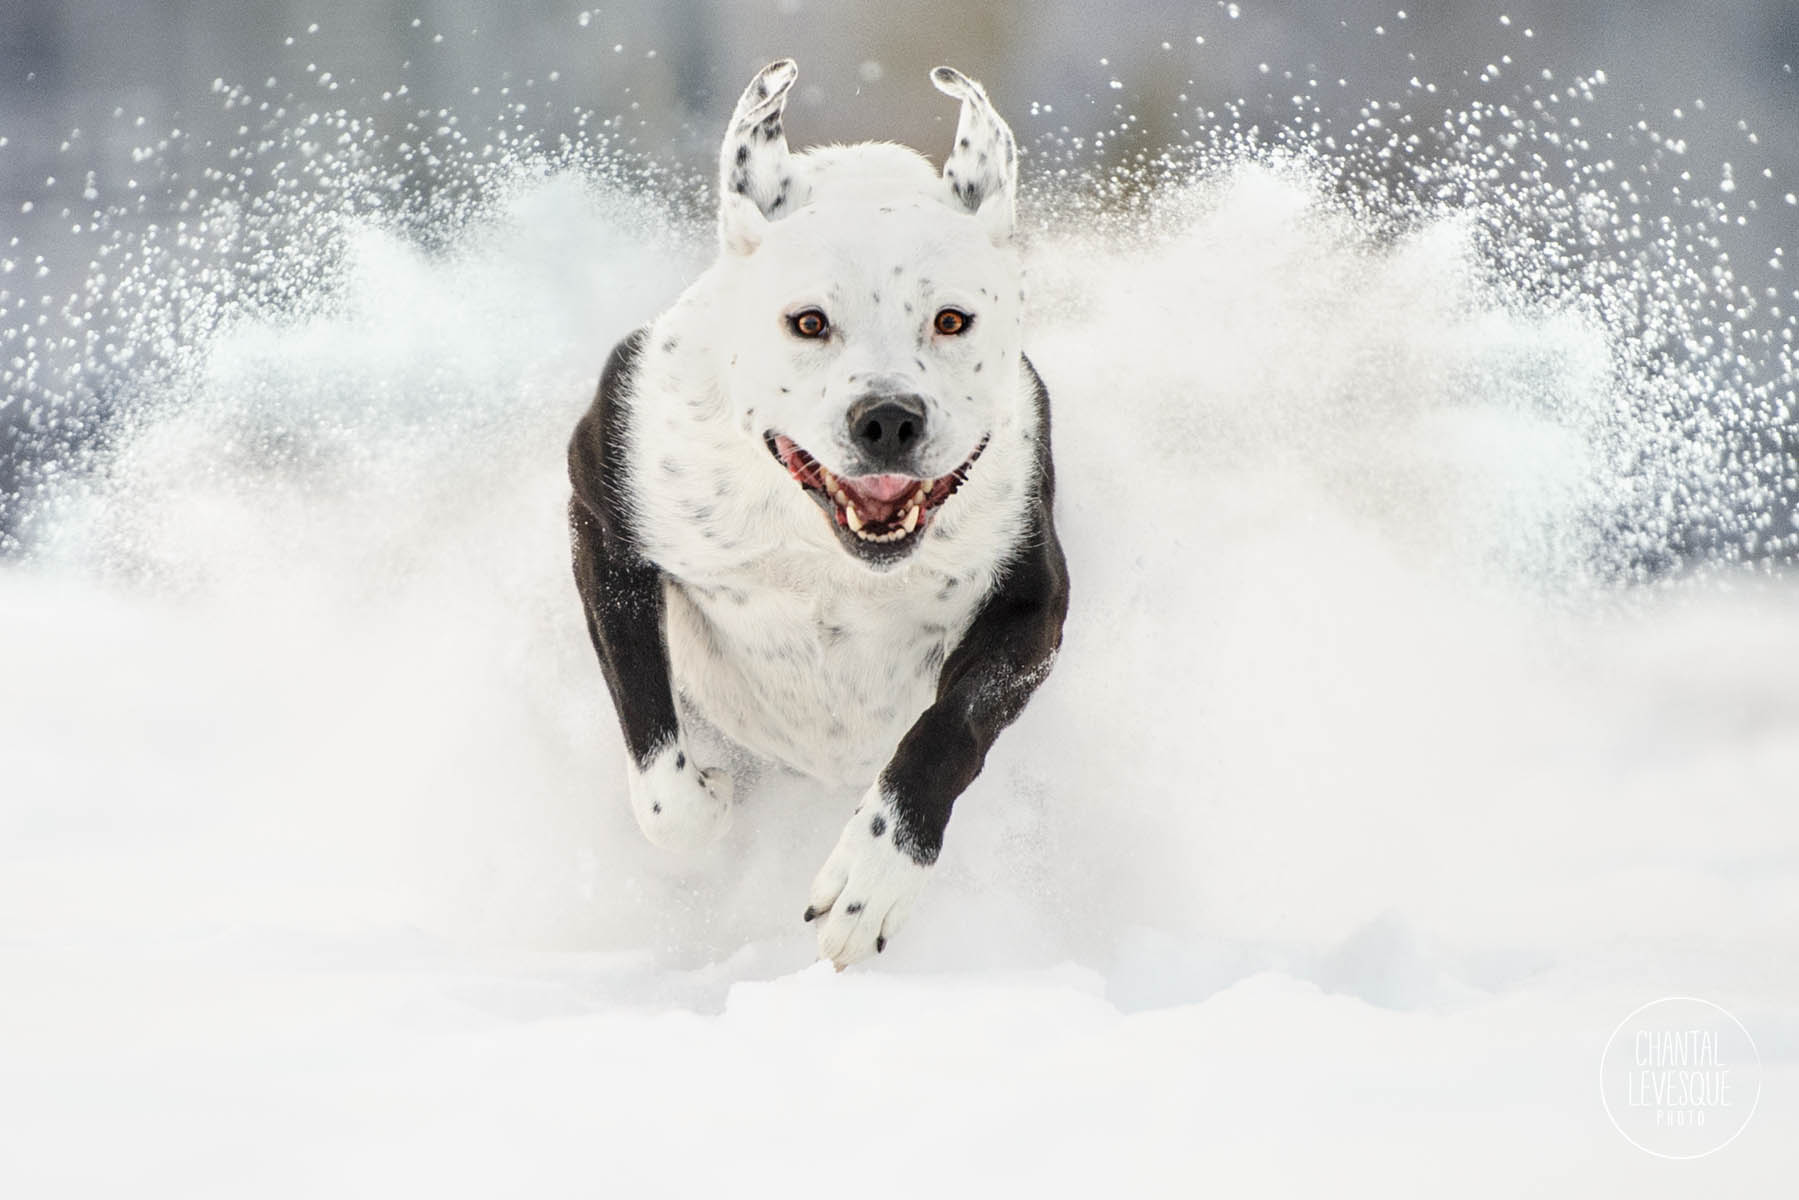 dog-action-photography-snow.jpg